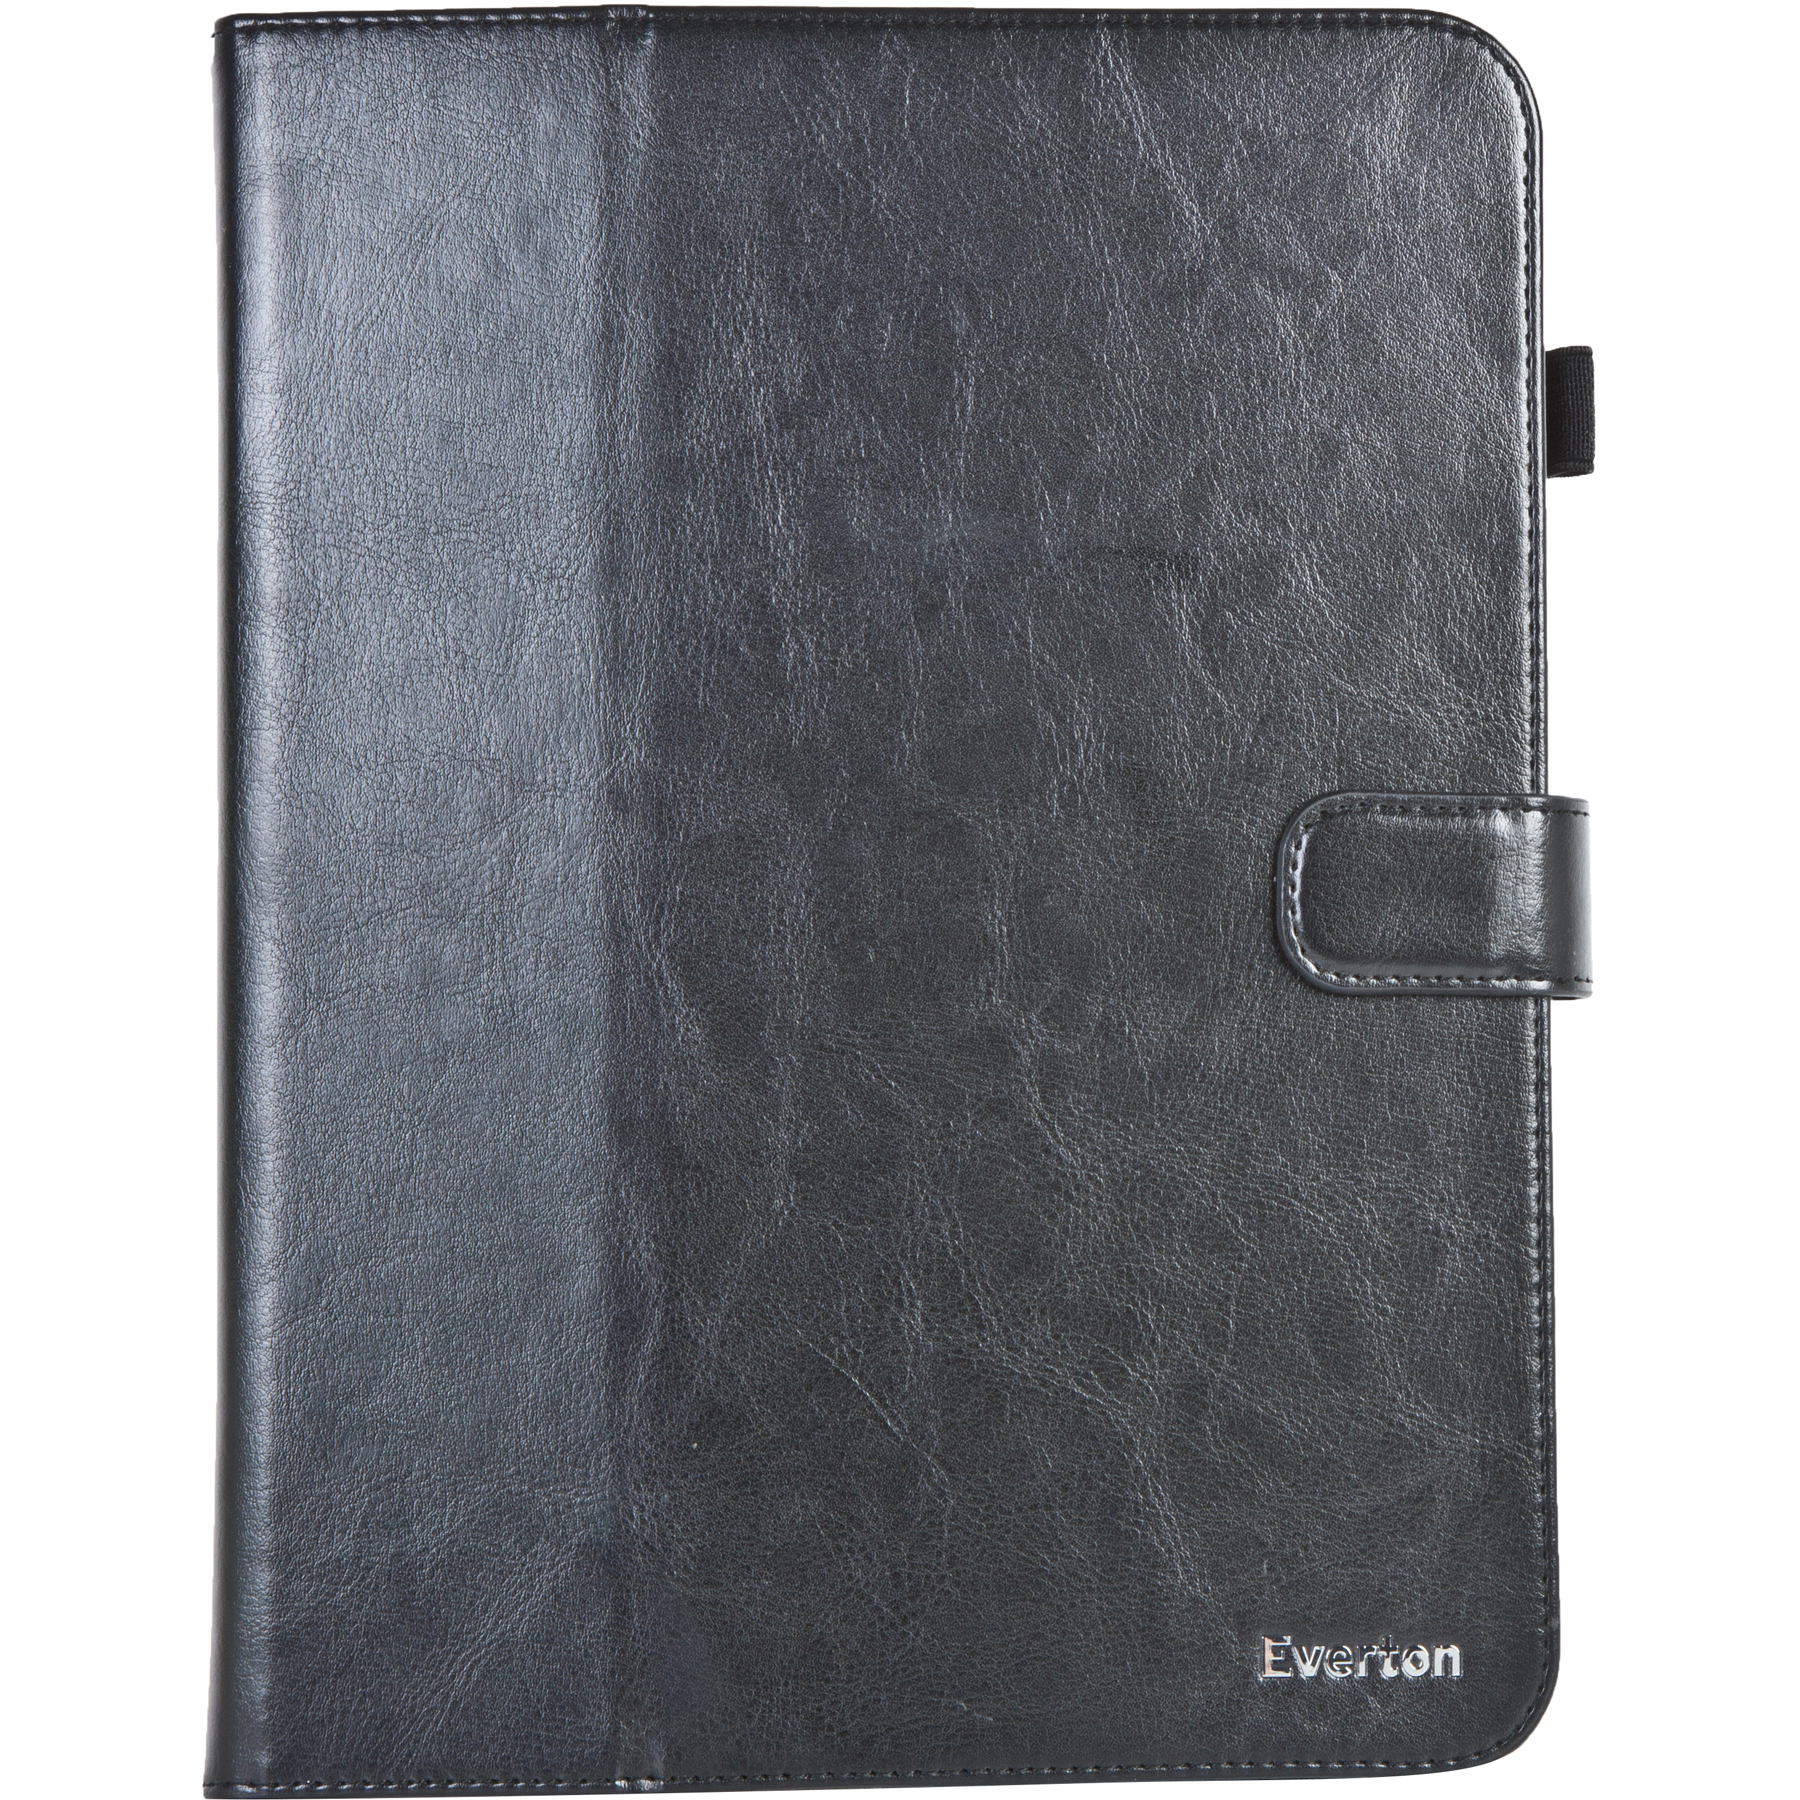 Image of Everton Adjustable Tablet Cover - 9-10 Inch